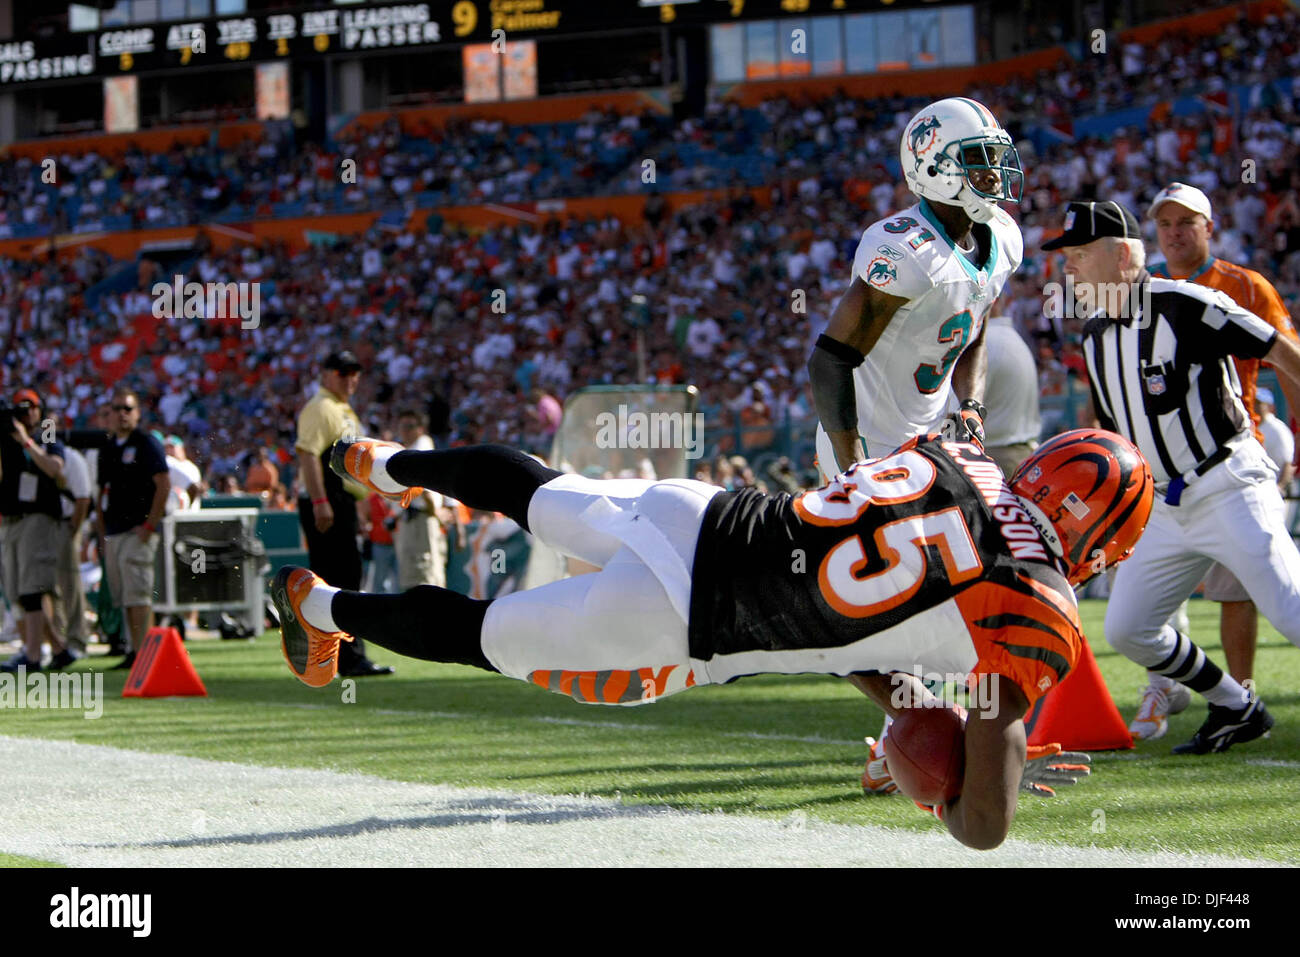 Dec 30, 2007 - Miami Gardens, Florida, USA - Bengals wide receiver CHAD JOHNSON dives in the end zone for a touchdown during second qt. action against the Dolphins during second half action Sunday at Dolphin stadium in Miami Gardens. (Credit Image: © Bill Ingram/Palm Beach Post/ZUMA Press) RESTRICTIONS: * USA Tabloids Rights OUT * - Stock Image